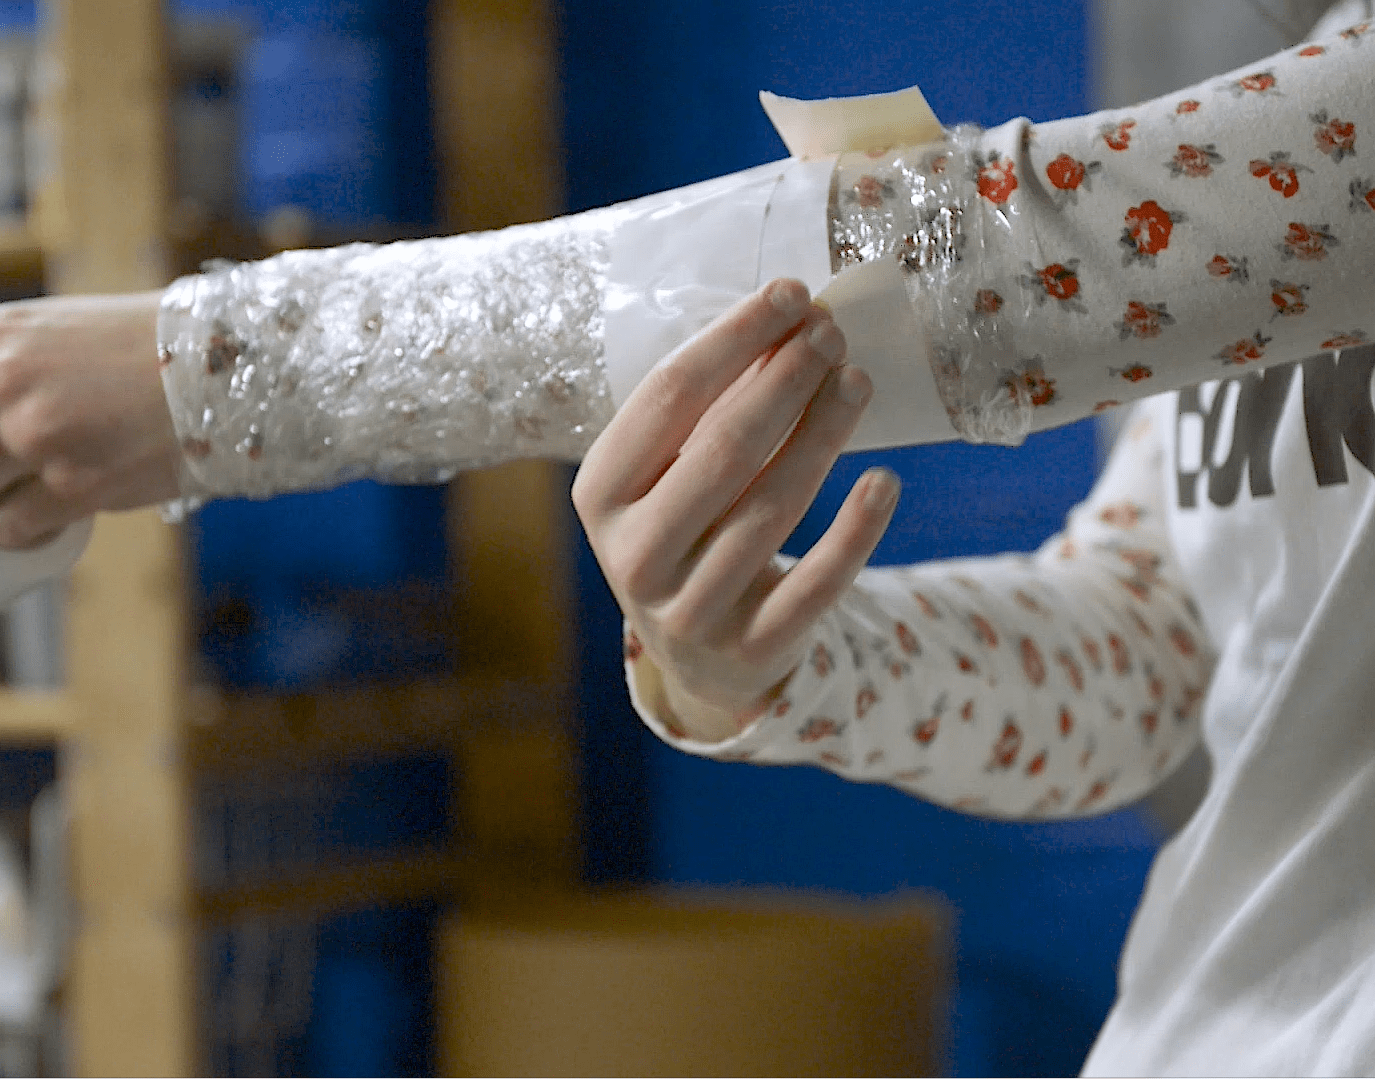 Cosplayer wrapping tape around plastic wrap for armor pattern